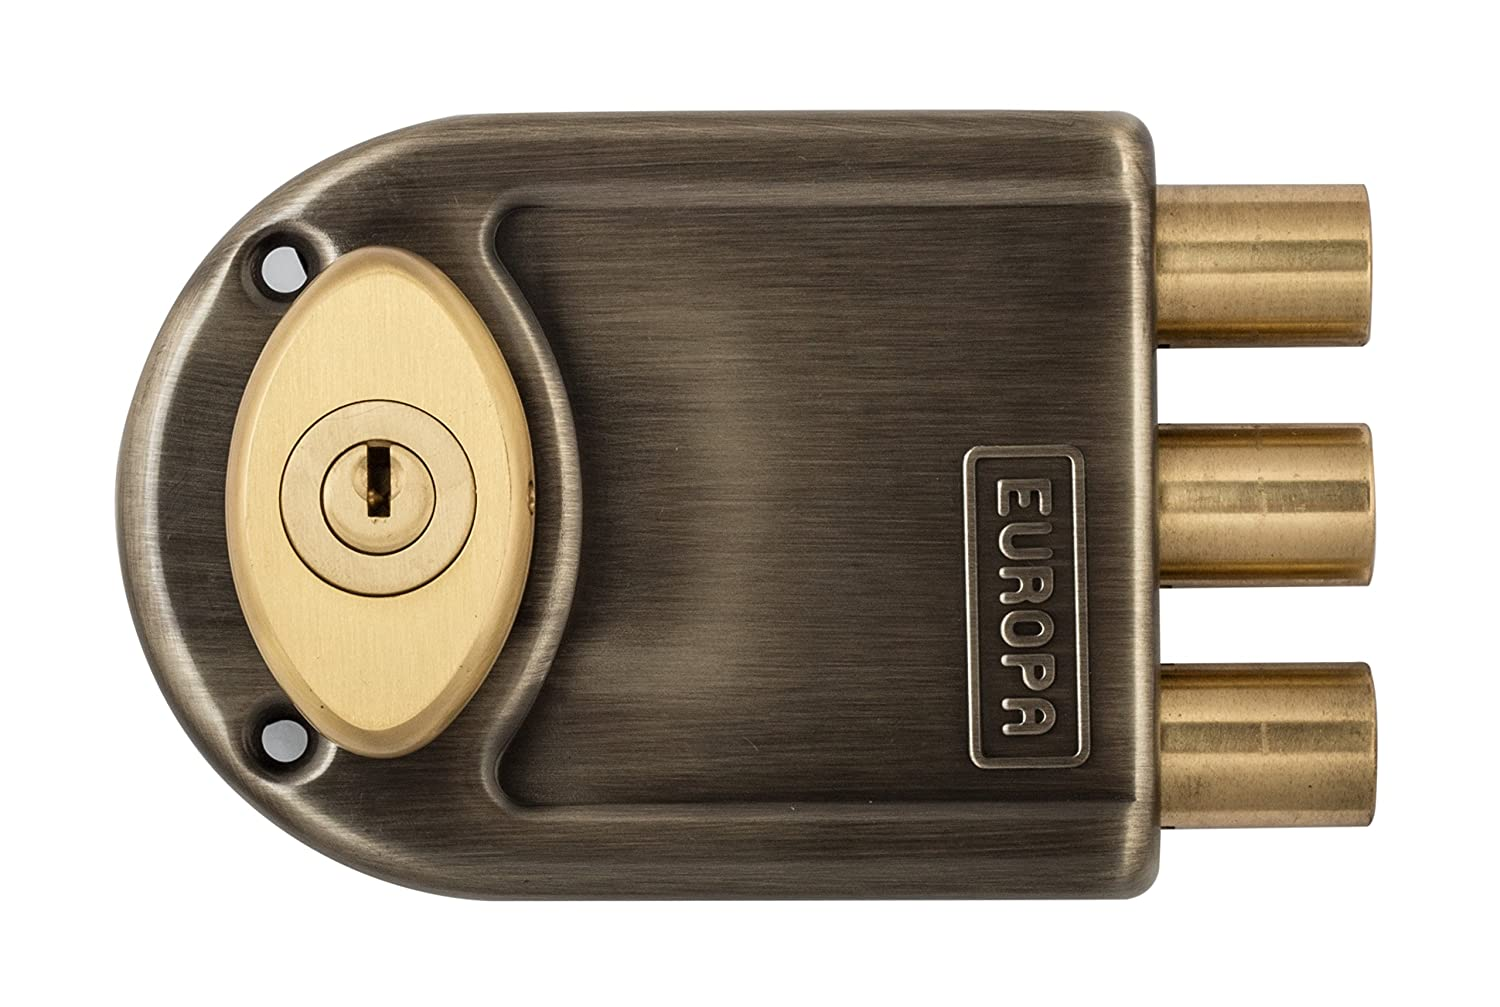 europa dimple key main door lock 8123 ab amazonin home improvement